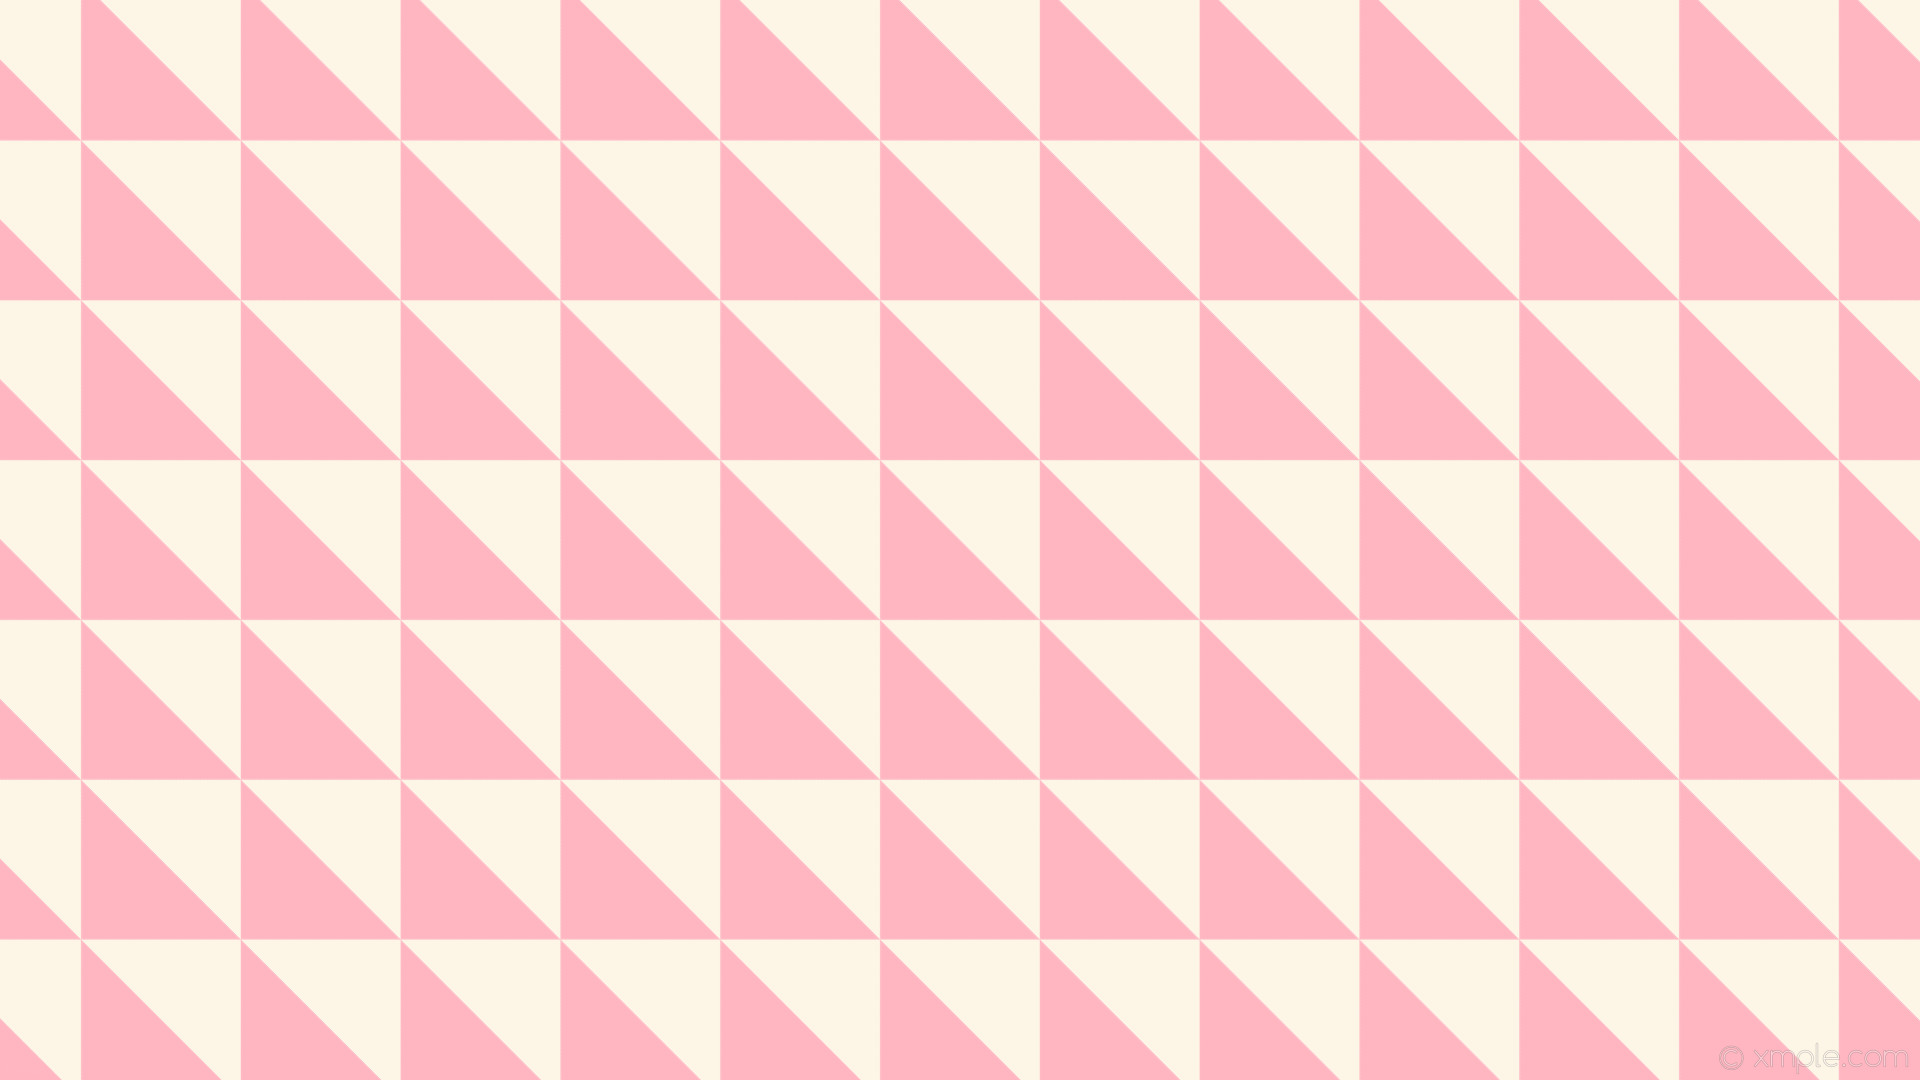 Res: 1920x1080, wallpaper pink white triangle old lace light pink #fdf5e6 #ffb6c1 135°  226px 226px